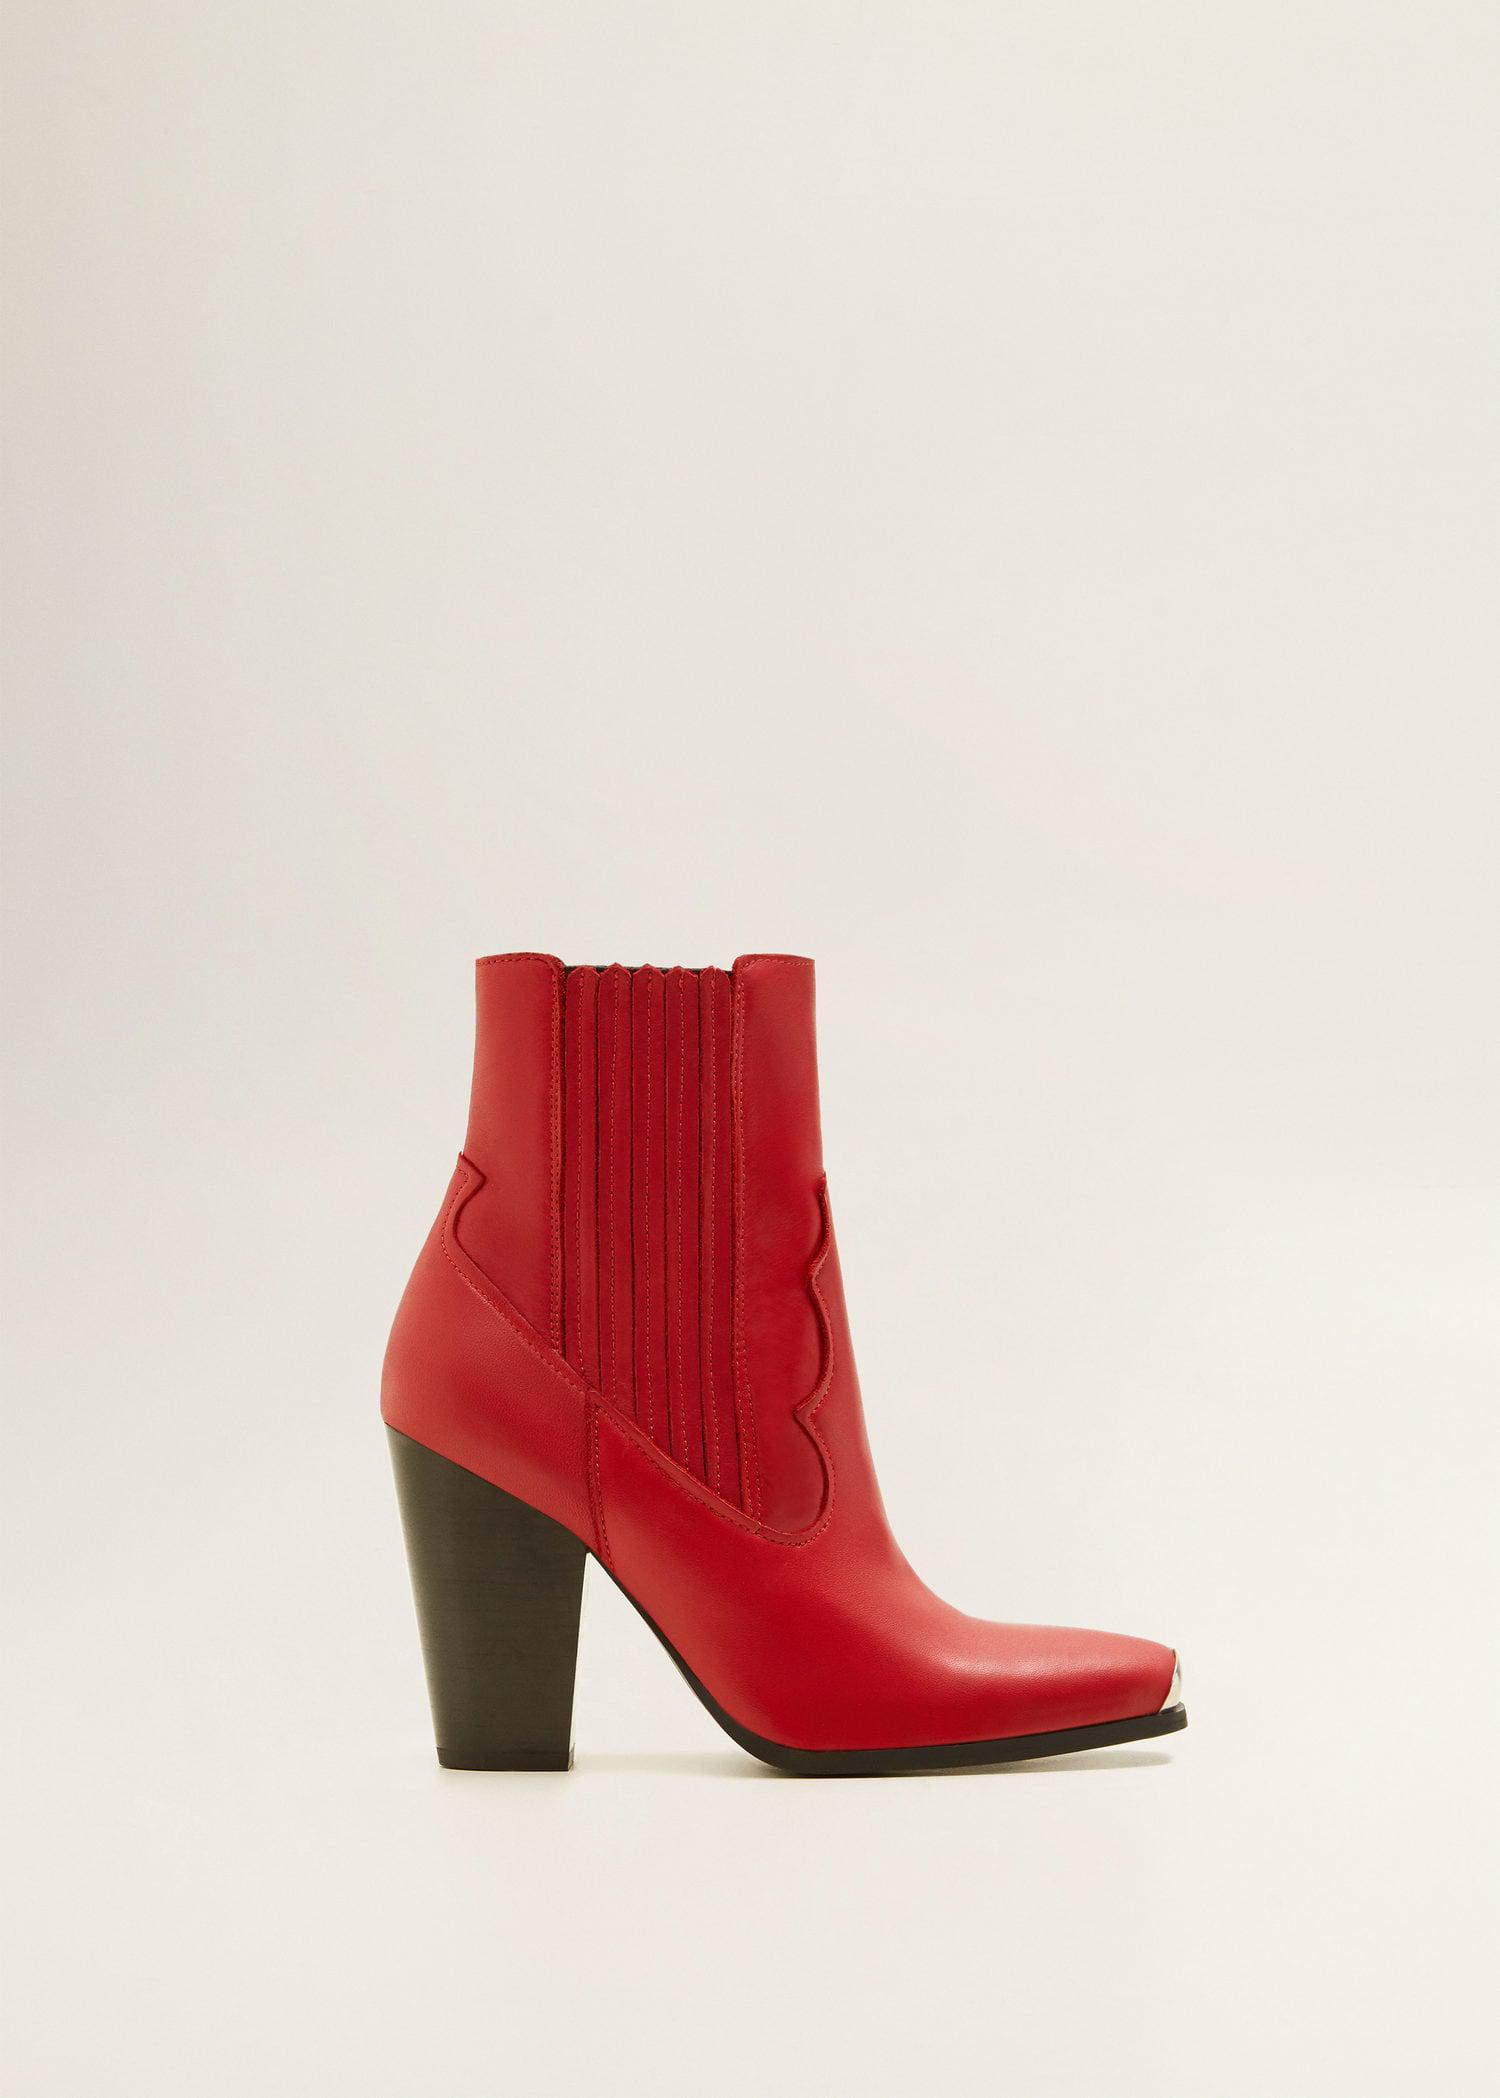 c322c9561b2 Mango Red Leather Cowboy Ankle Boots